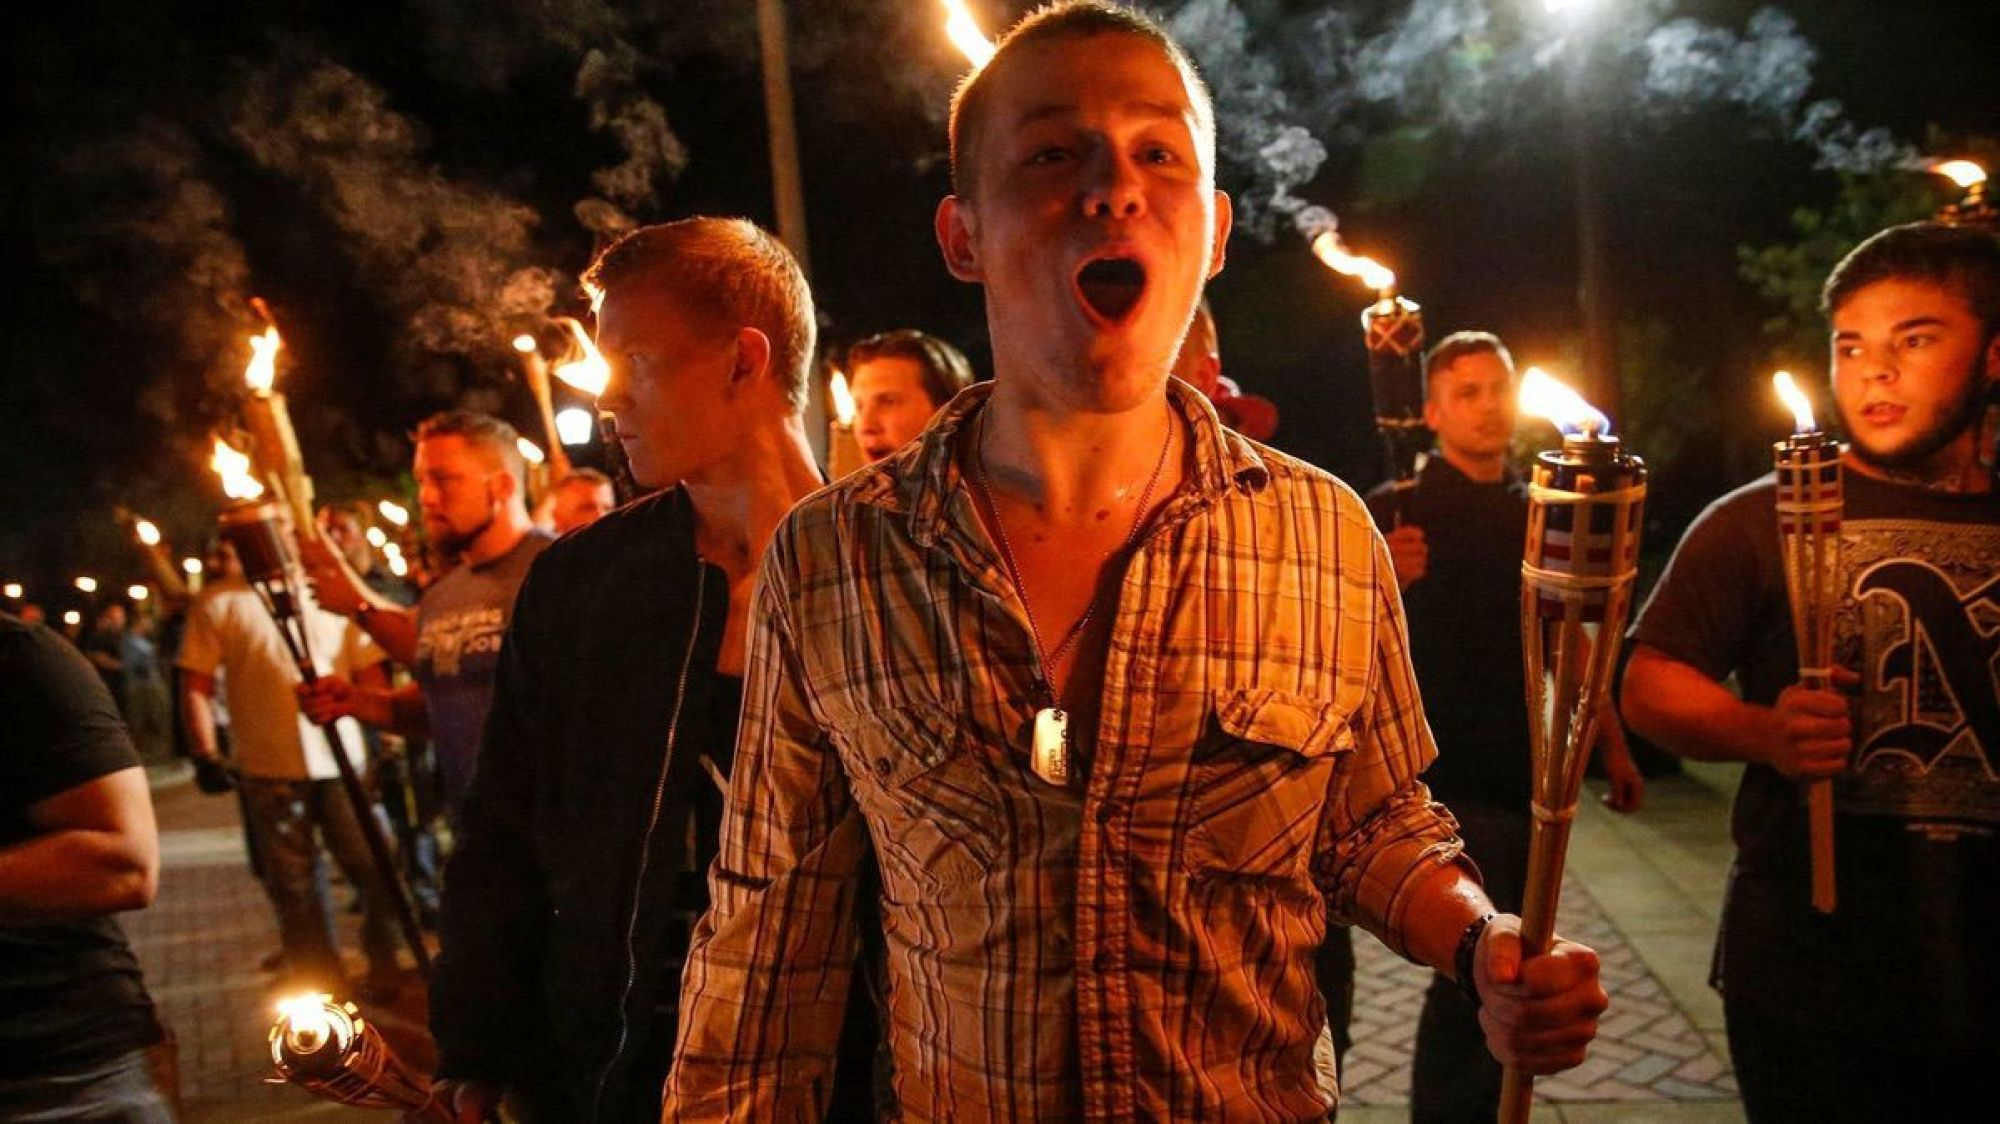 White supremacists march with torches through the UVA campus in Charlottesville, VA- Friday, Aug. 11, 2017 (Mykal McEldowney/The Indianapolis Star via AP)